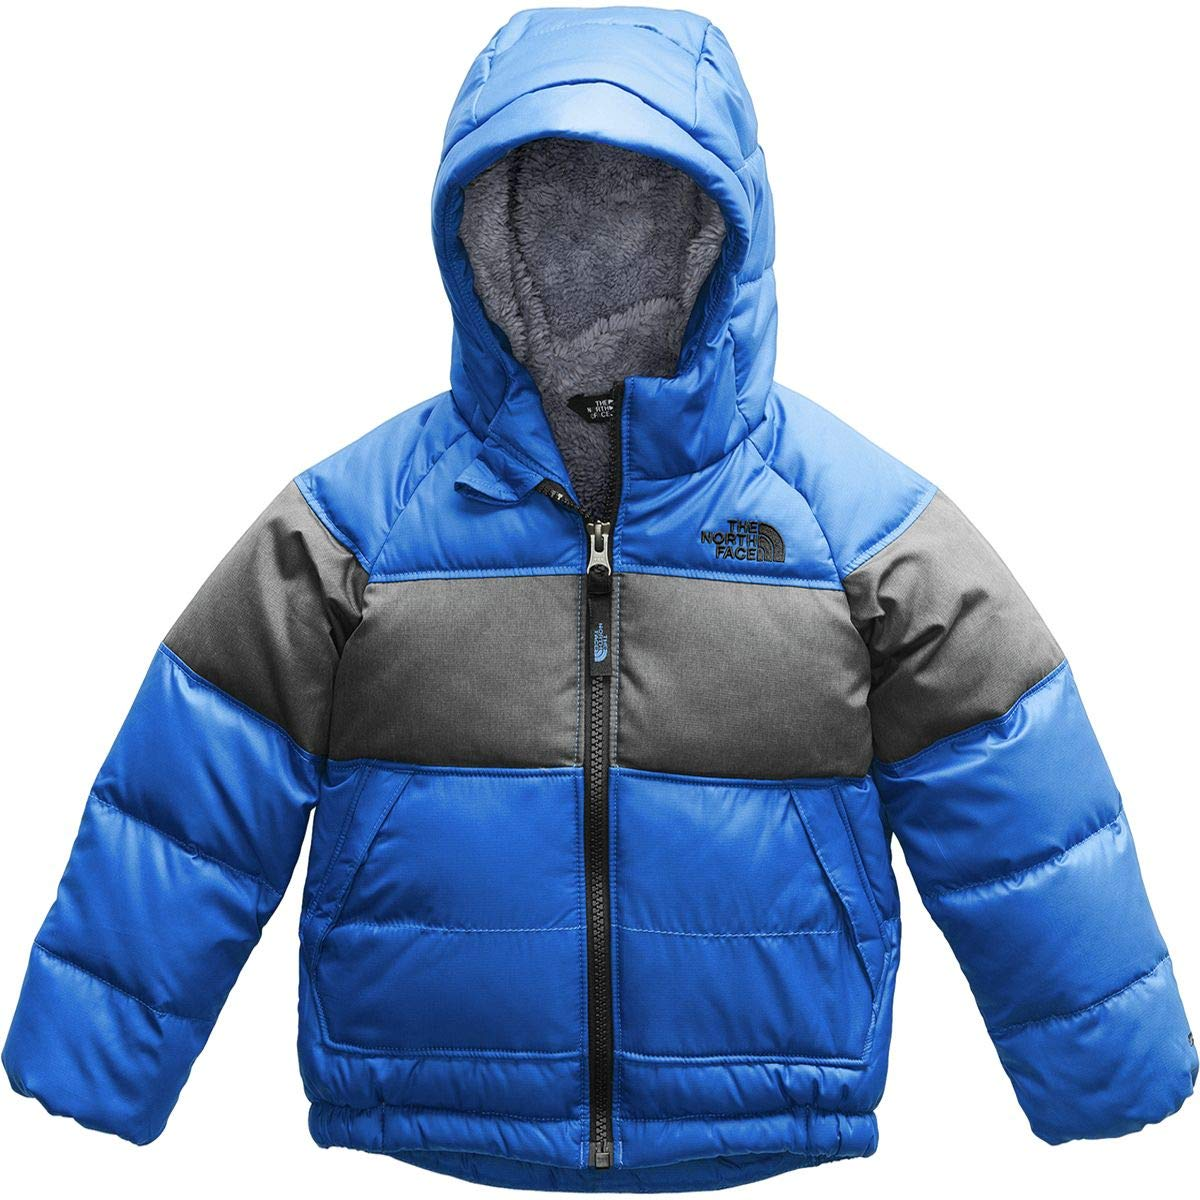 The North Face Kids Baby Boy's Moondoggy 2.0 Down Jacket (Toddler) Turkish Sea 2T Toddler